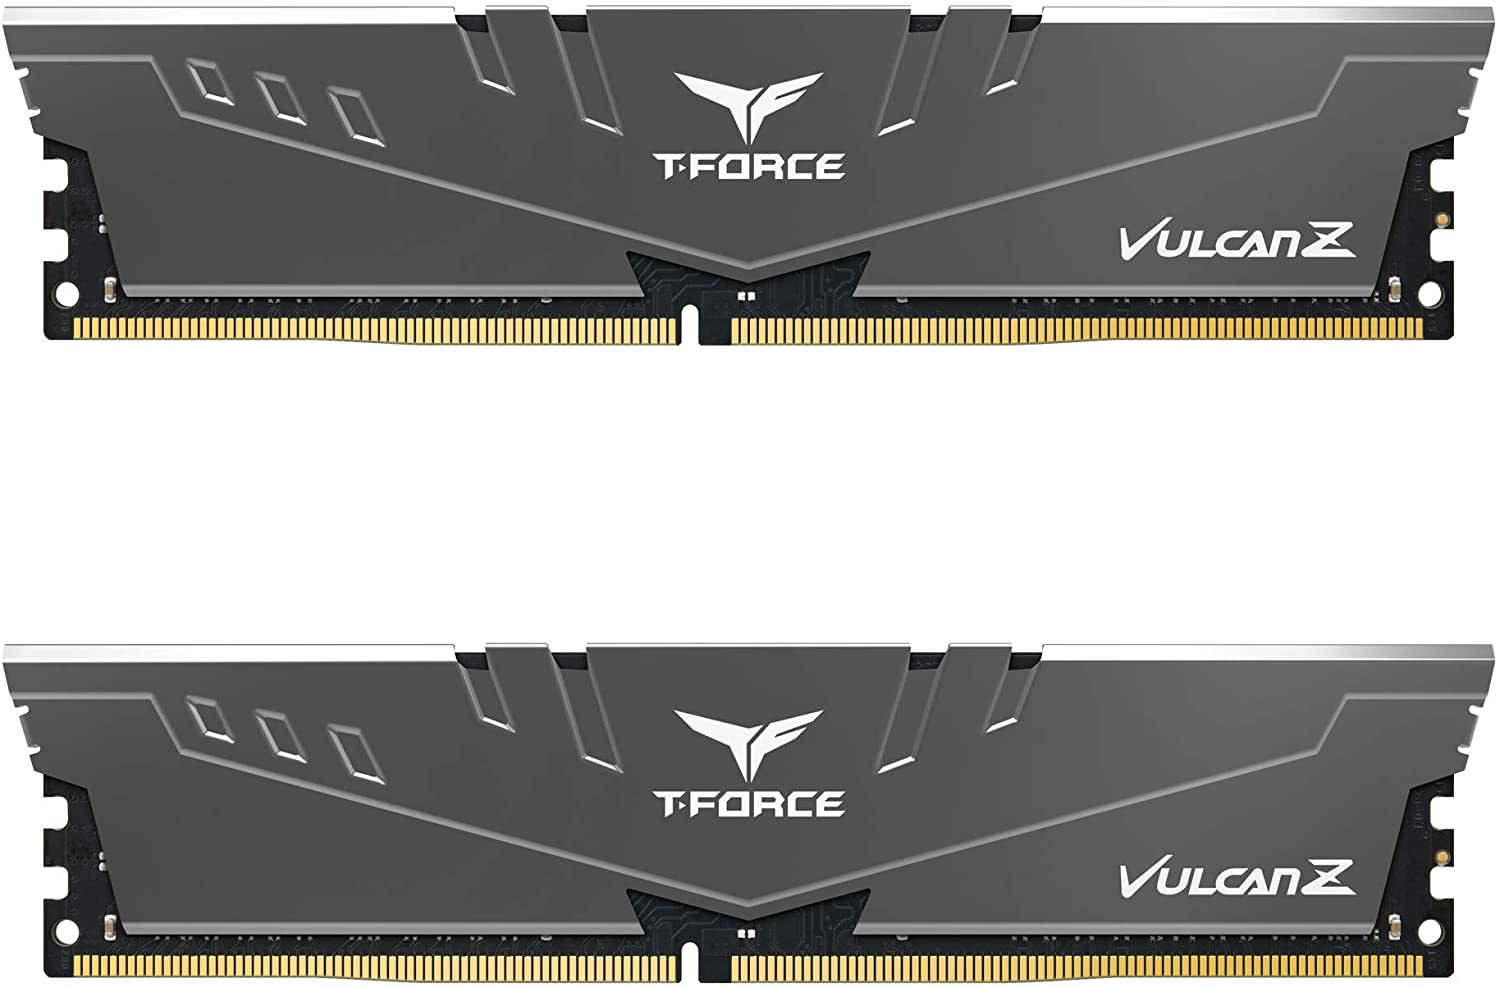 Vulcan Z DDR4 32GB Kit (2x16GB) 3200MHz (PC4-25600) CL16 Desktop